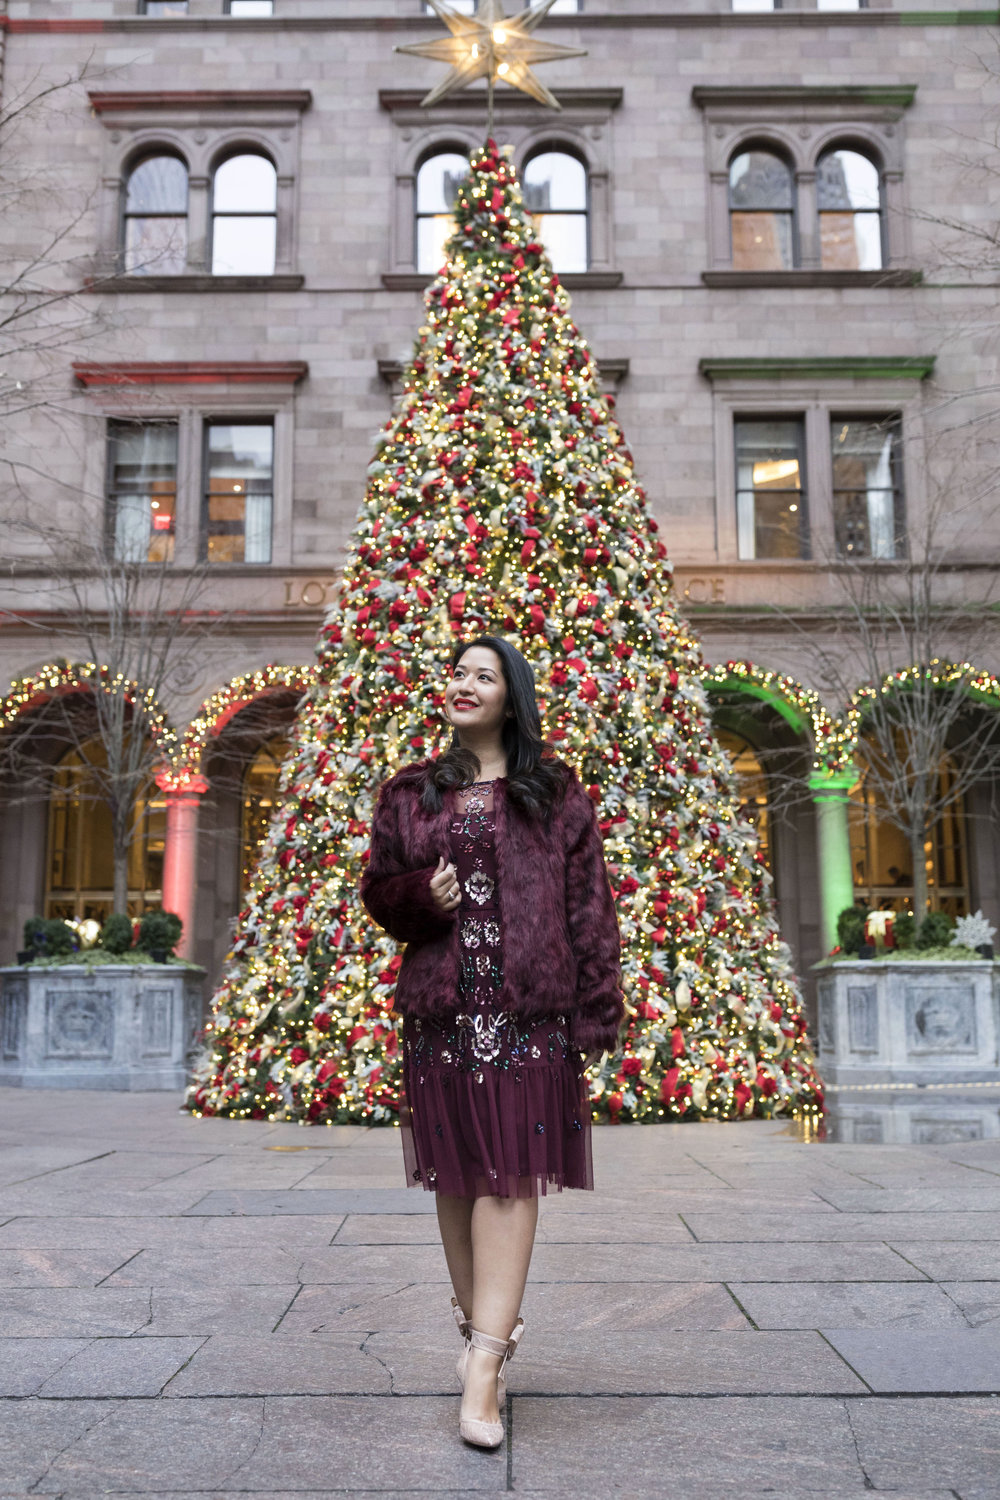 Krity S x Holiday Outfit x Aidan Beaded Burgundy Short Dress4.jpg